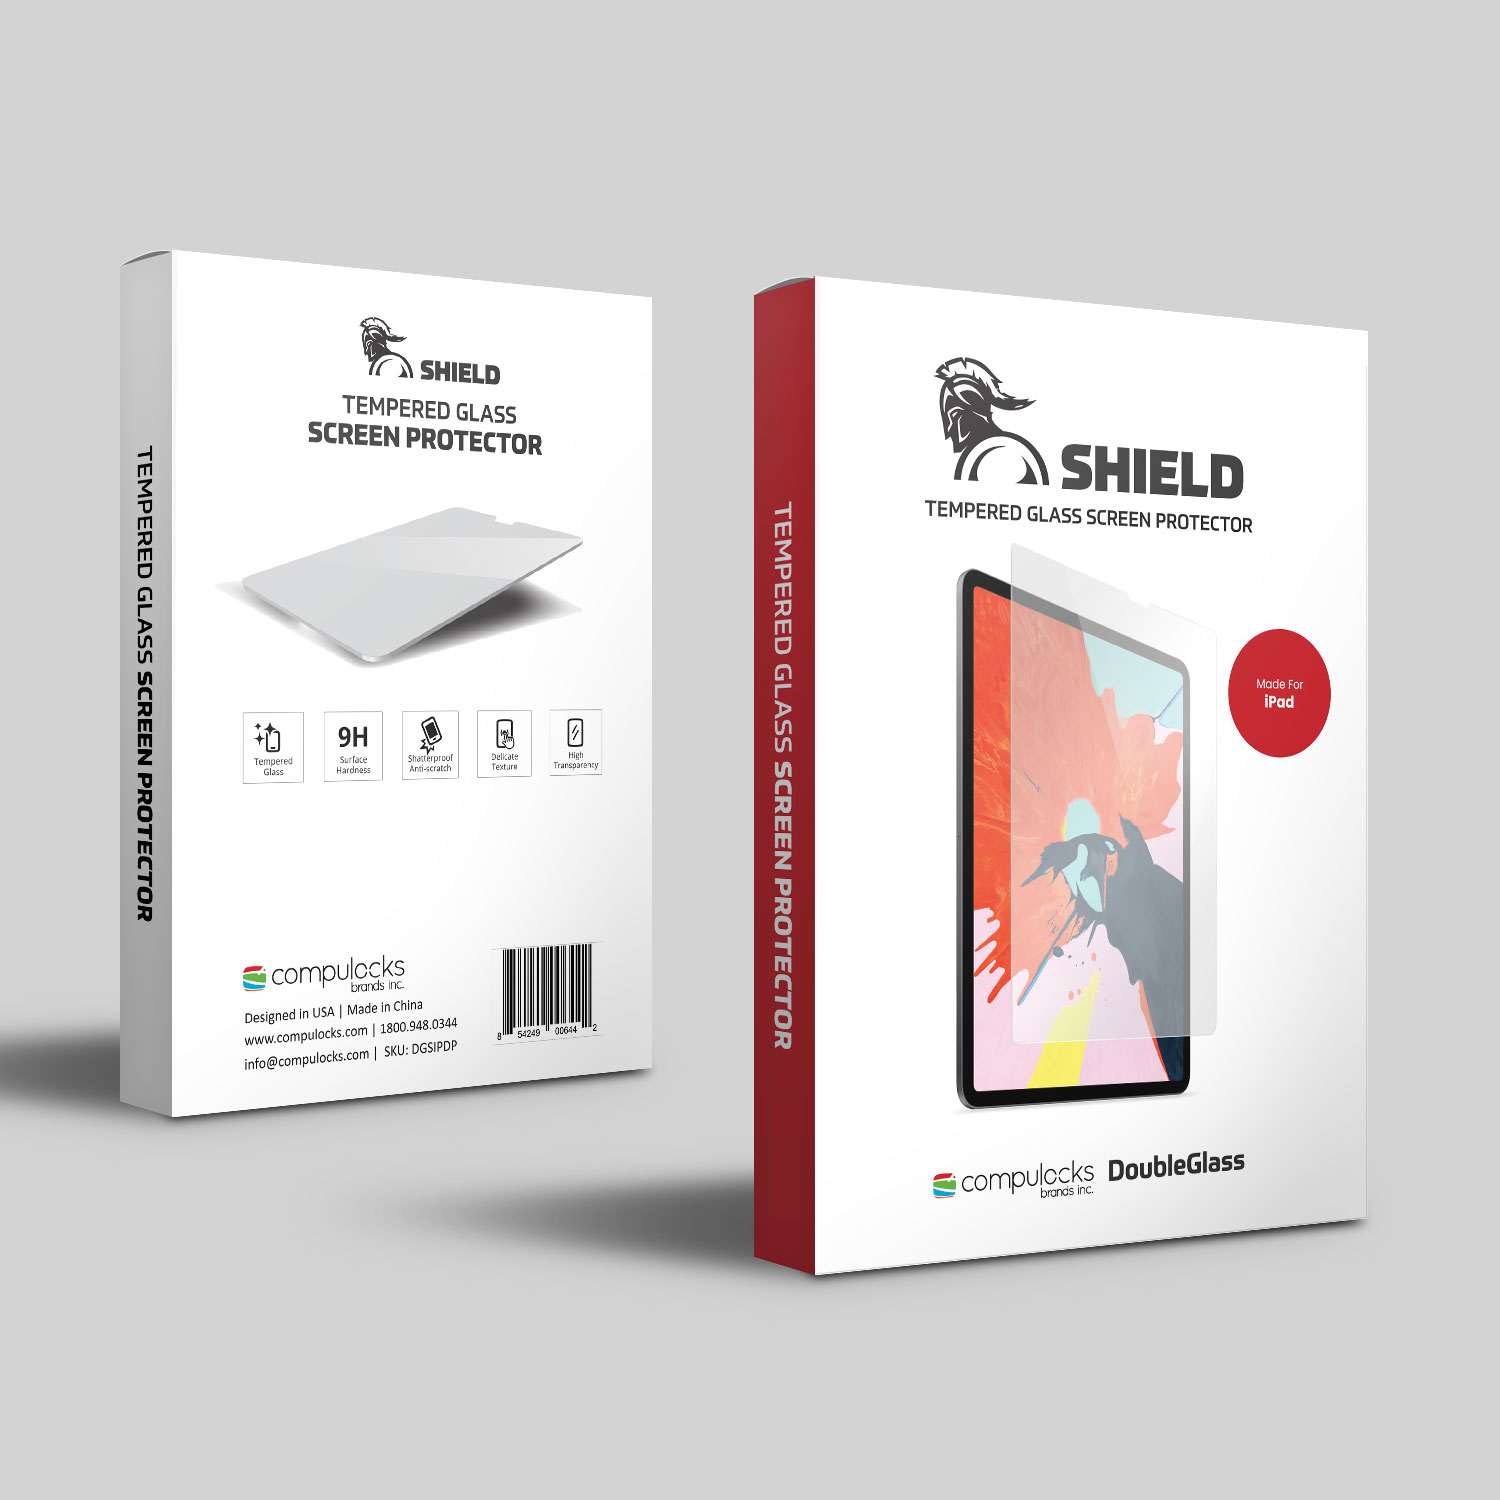 SHIELD - Tempered Glass Screen Protector For iPad Pro 12.9